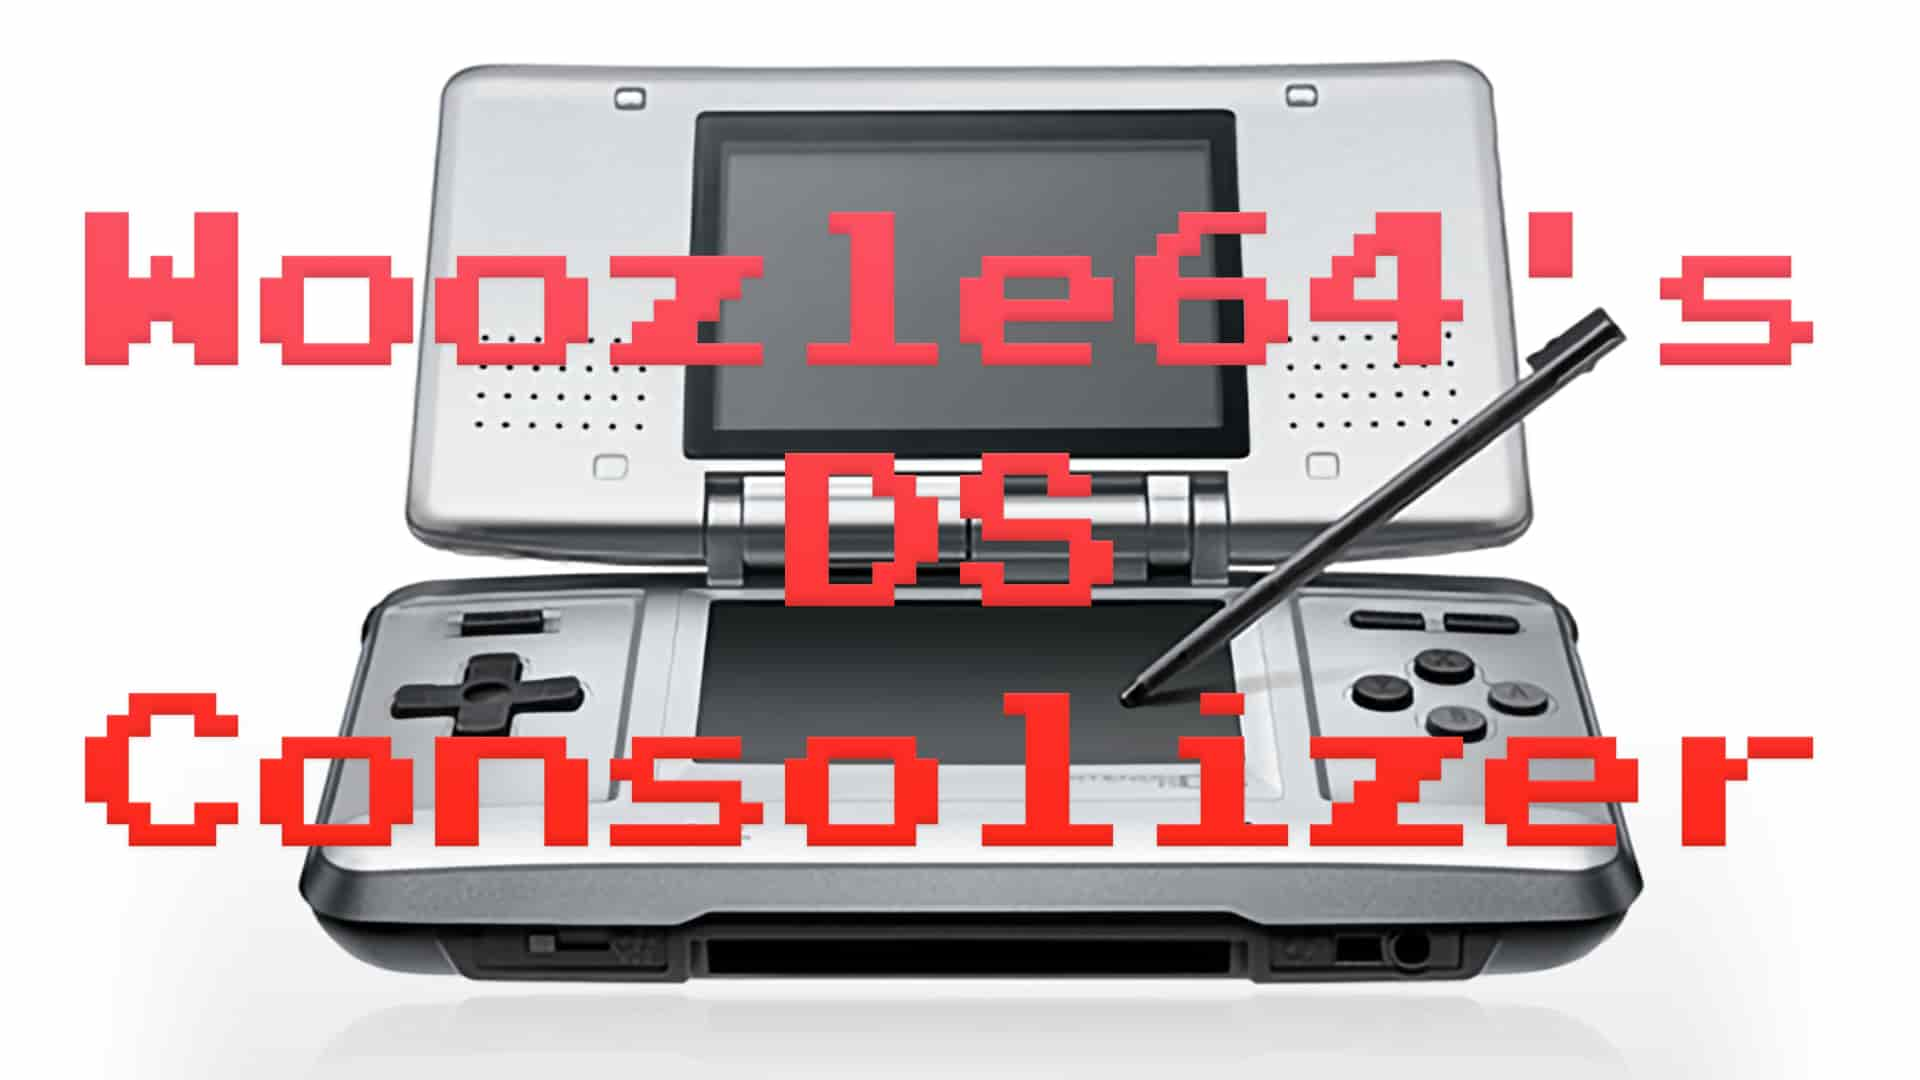 Consolized Nintendo DS teased by Woozle64